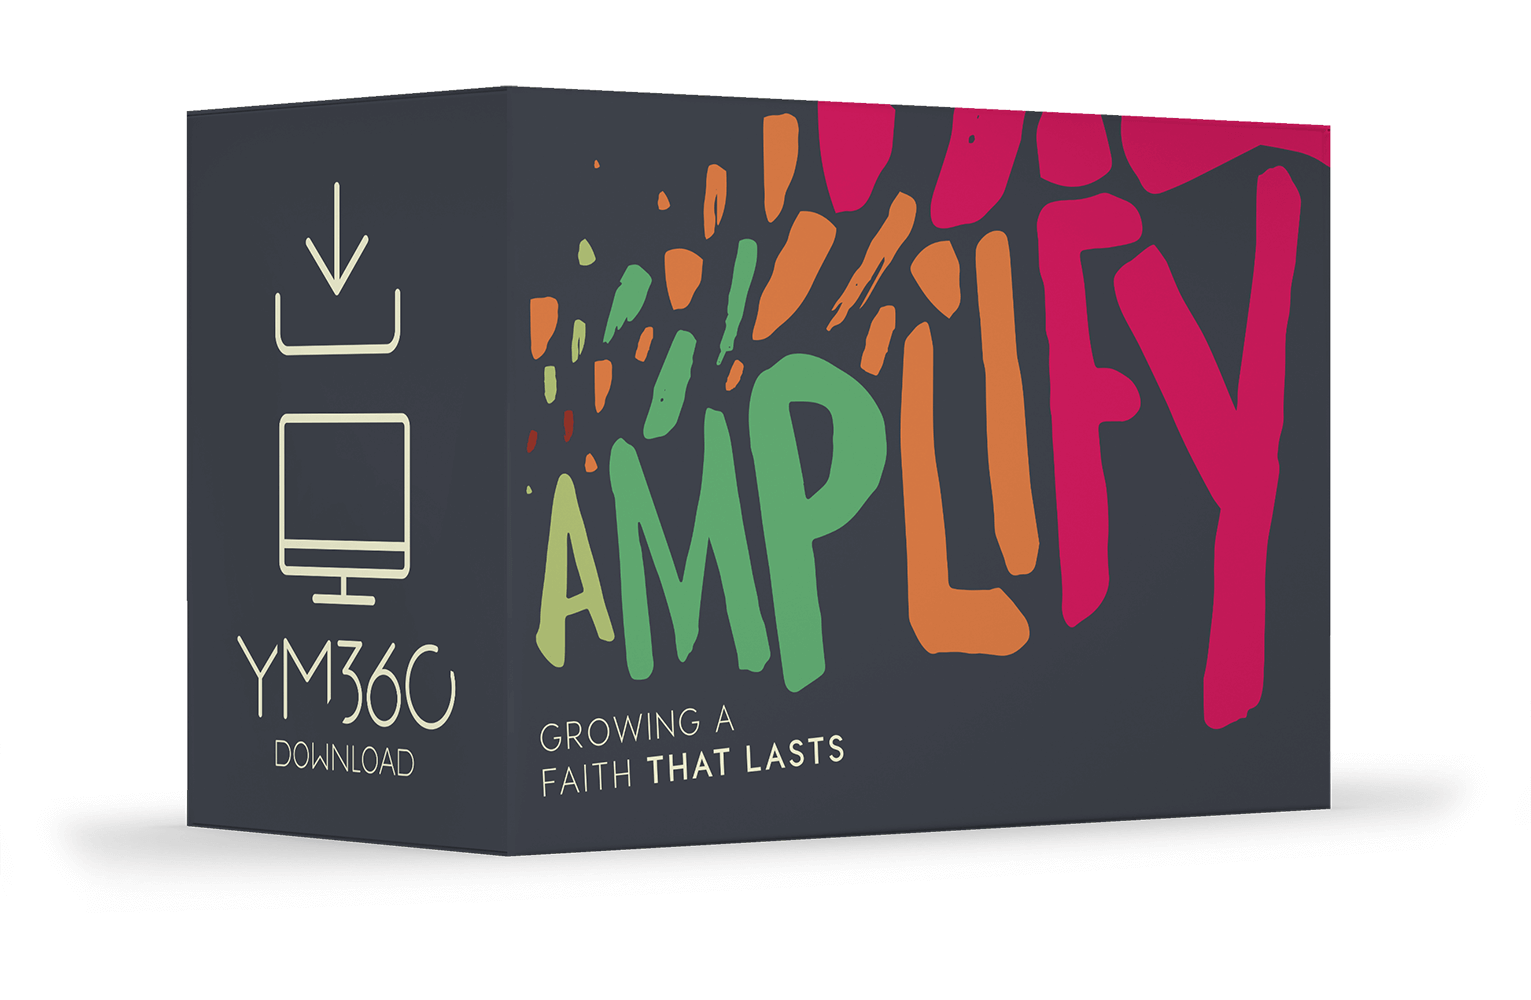 Amplify: Growing a Faith That Lasts